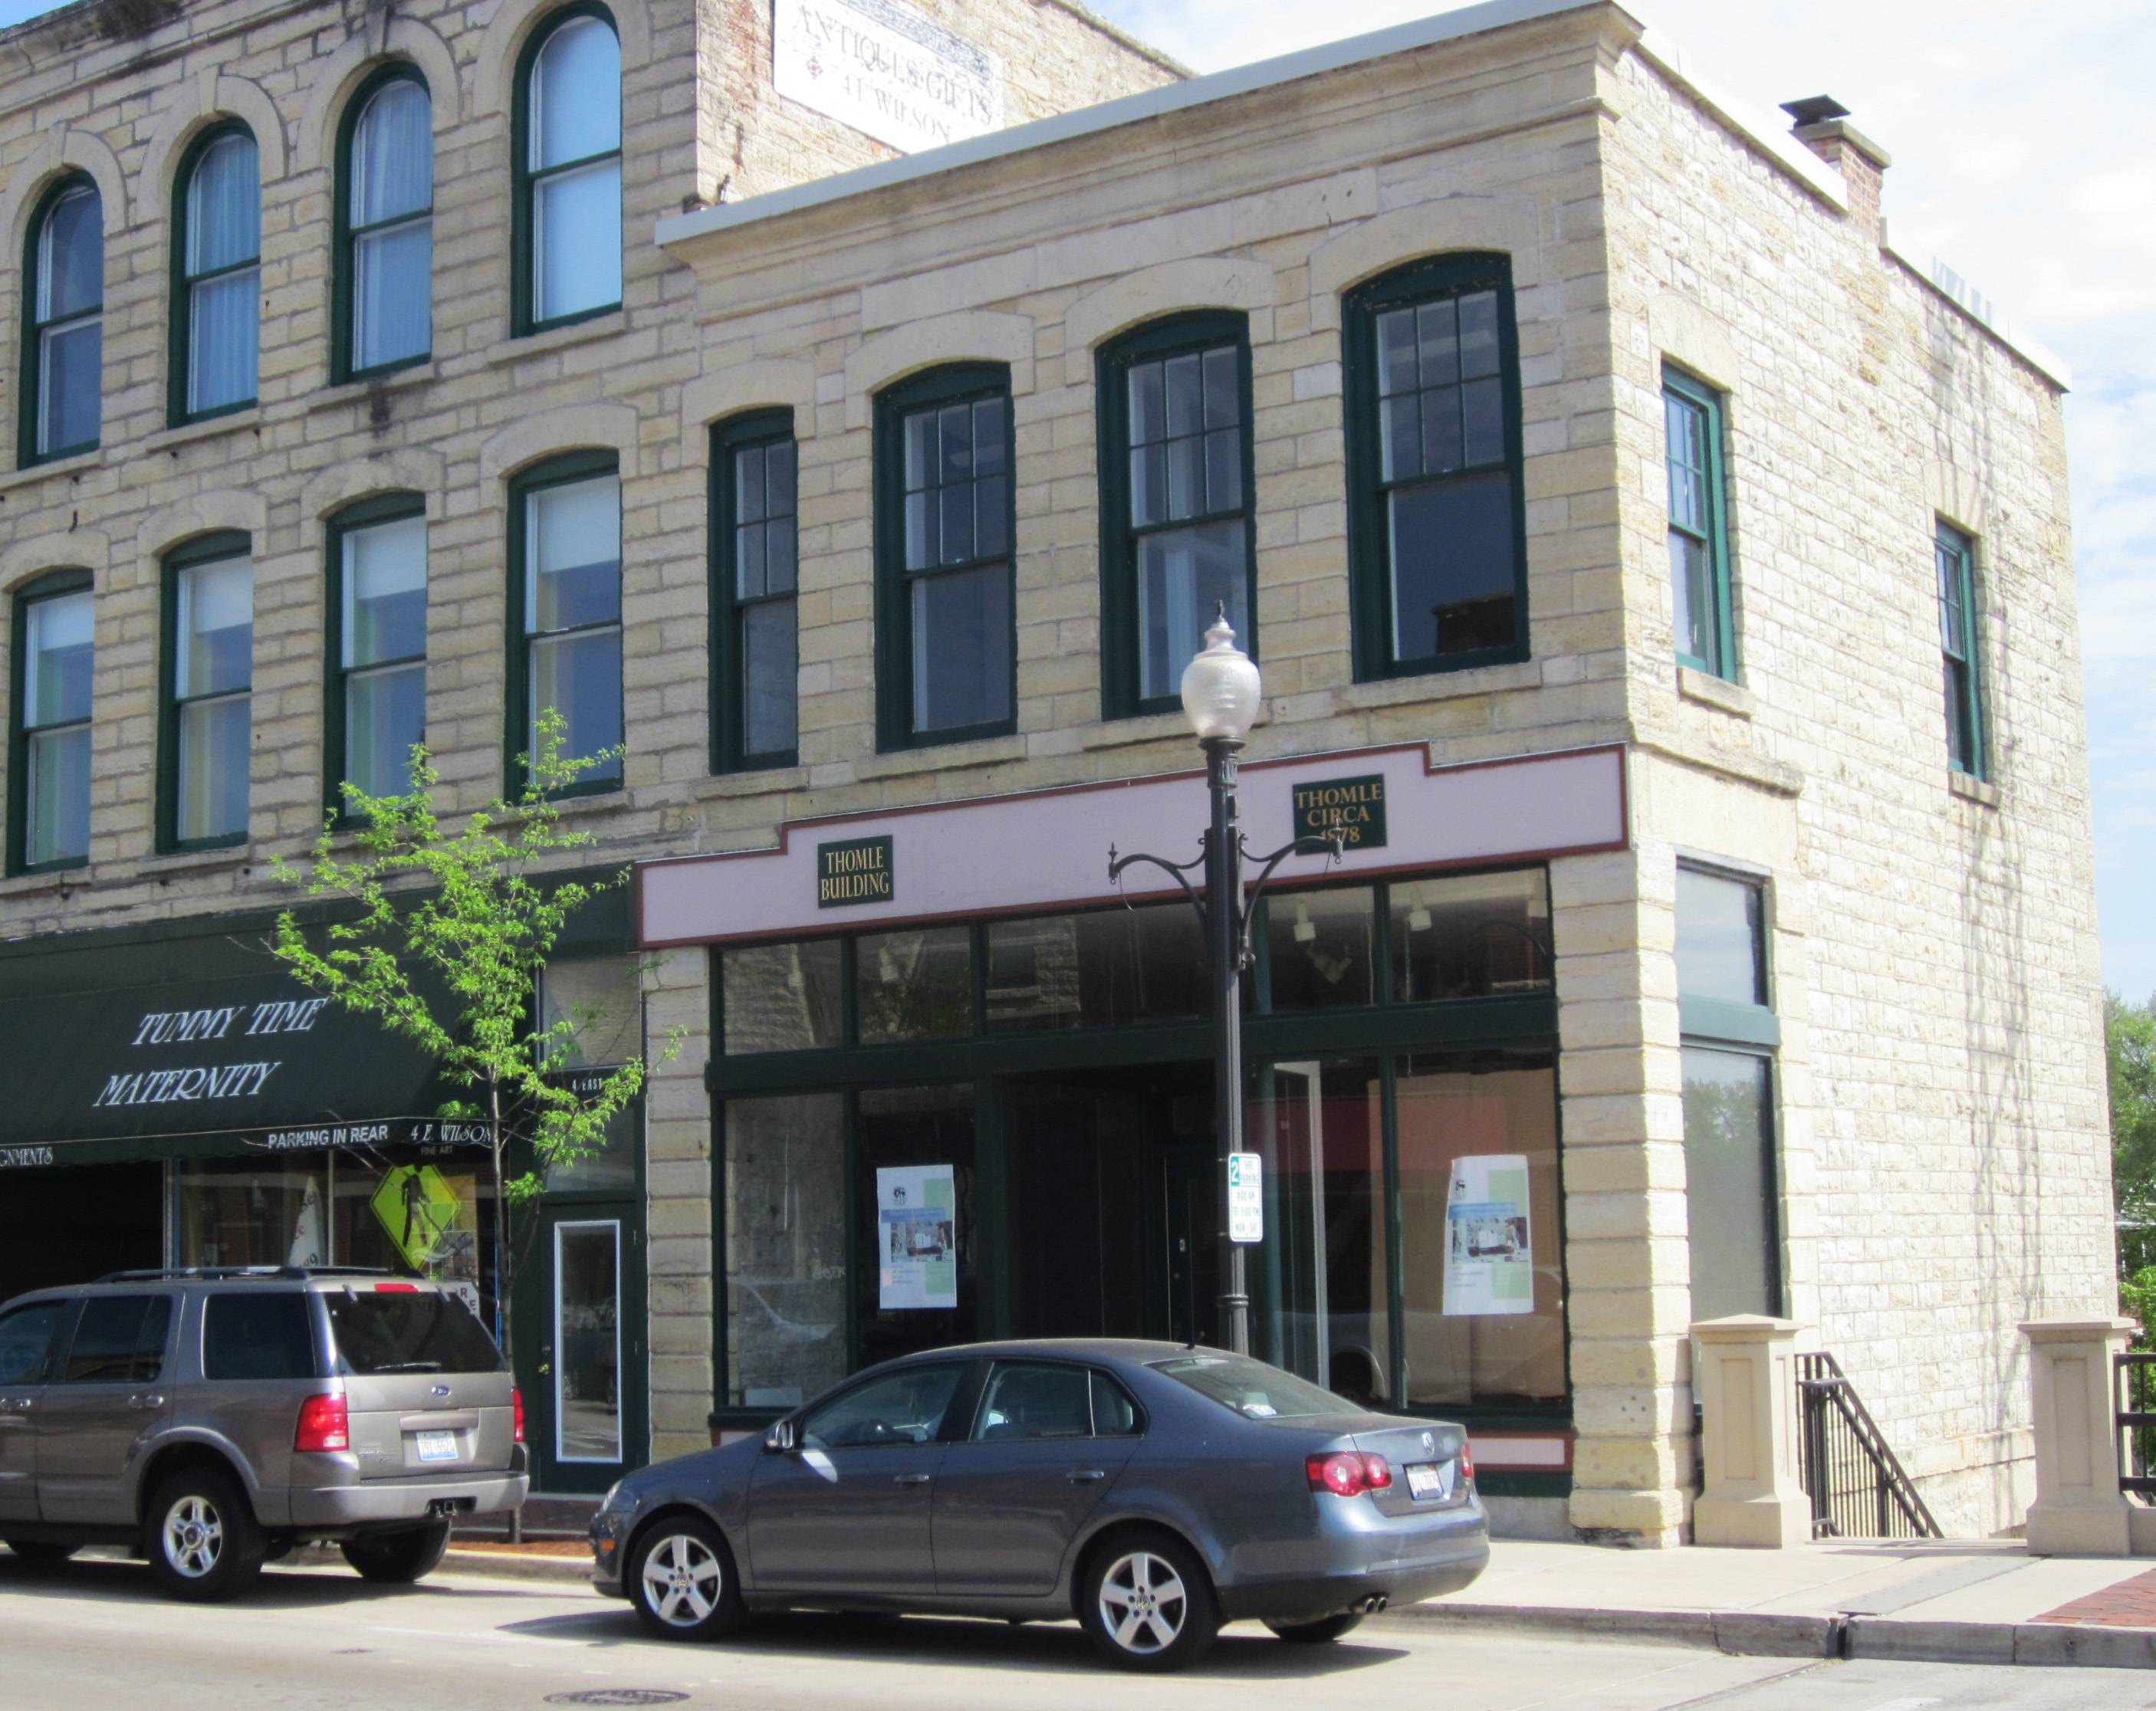 Developer withdraws plan to buy Batavia building